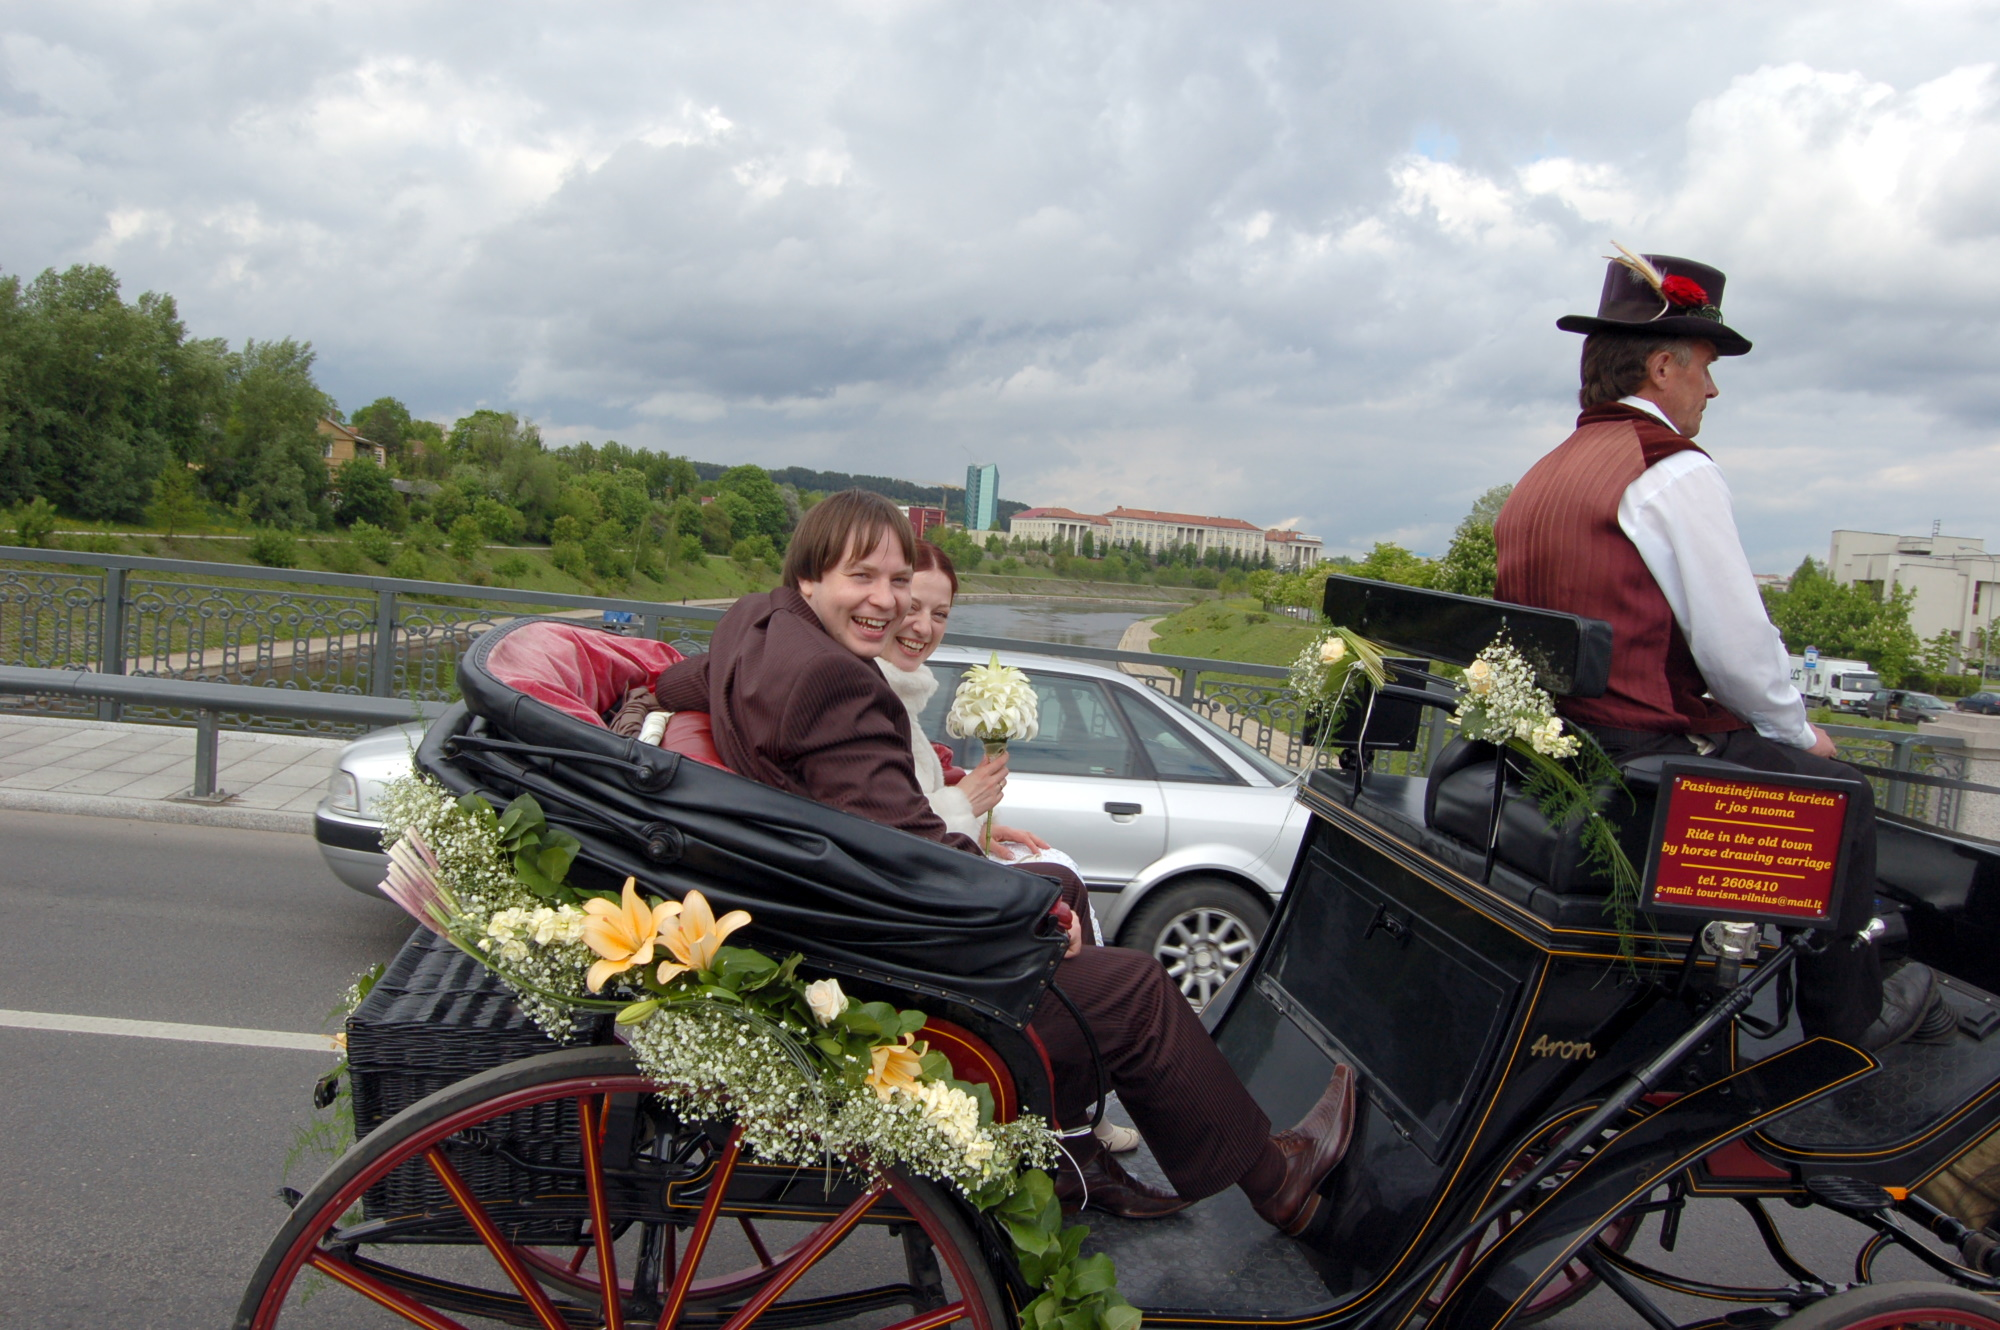 Newlyweds ride in a horse-drawn carriage over the bridge